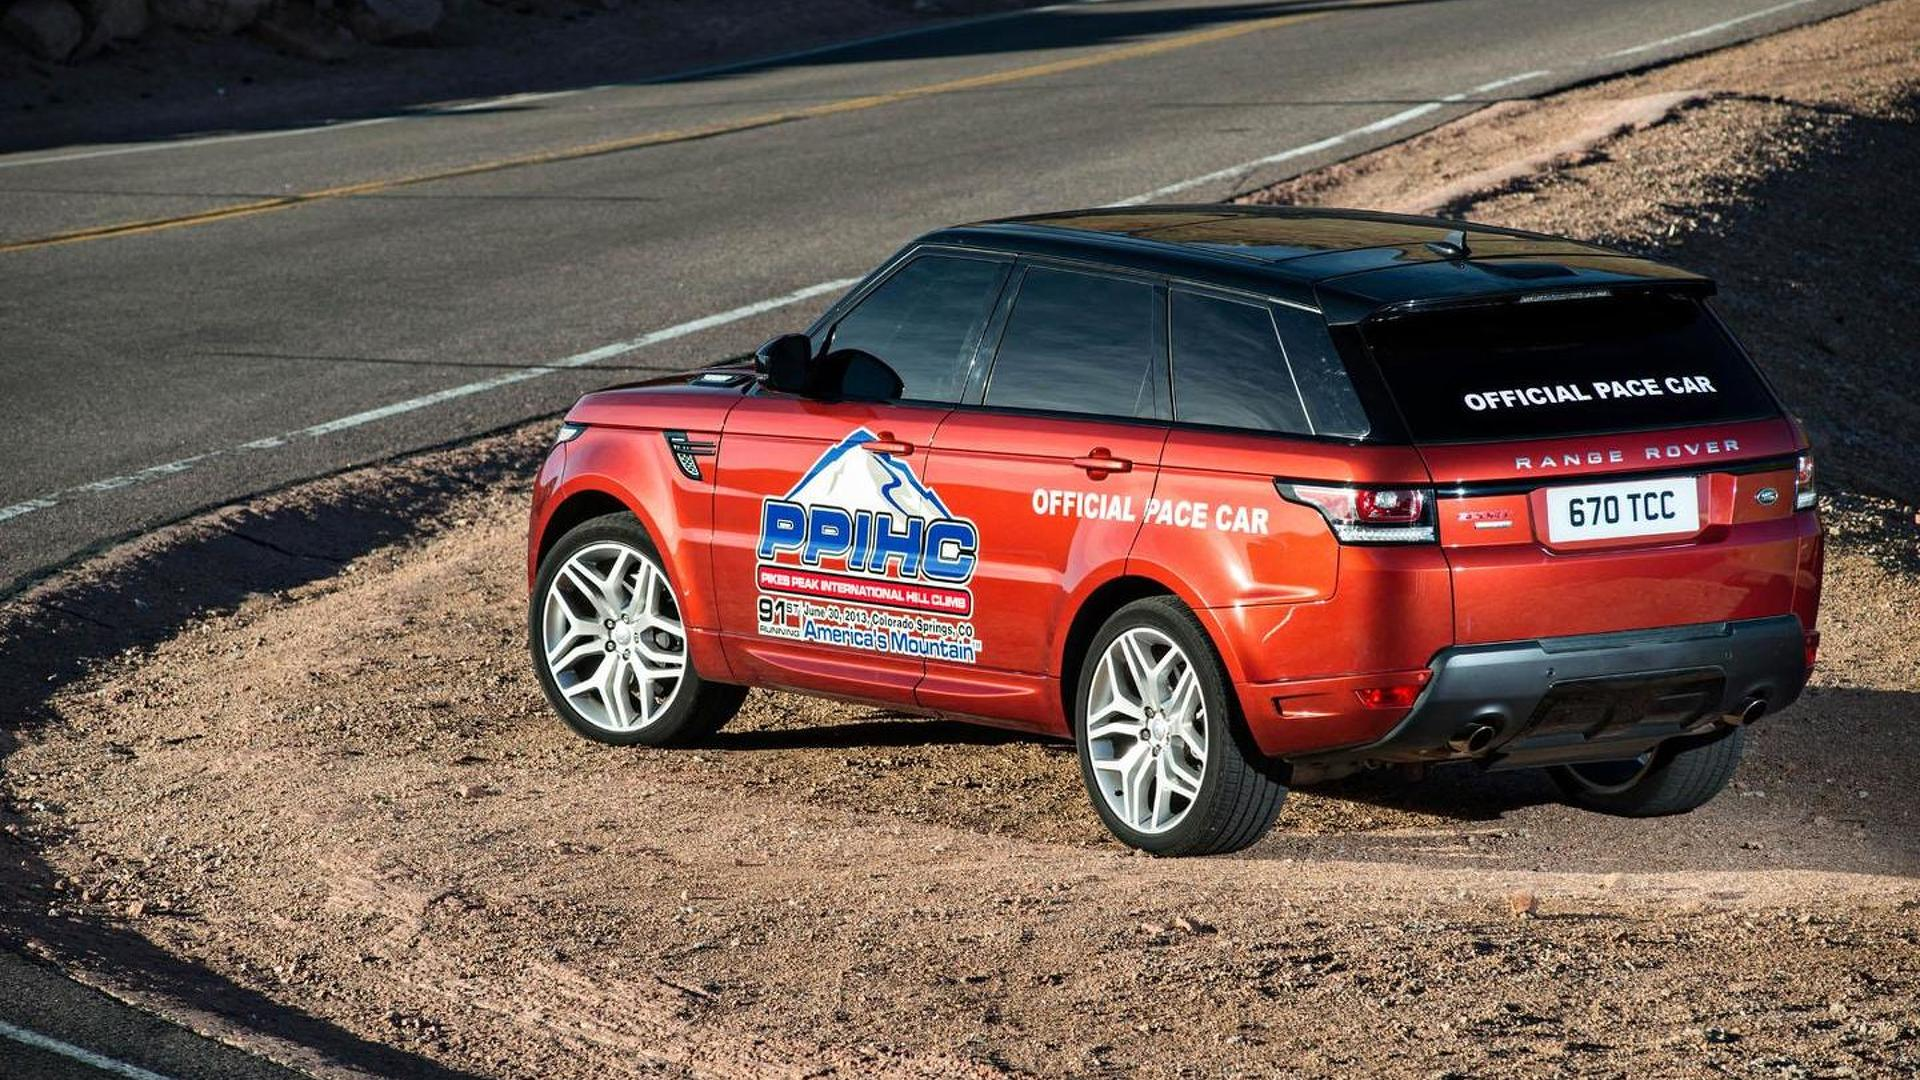 Range Rover Sport pace car unveiled for Pikes Peak